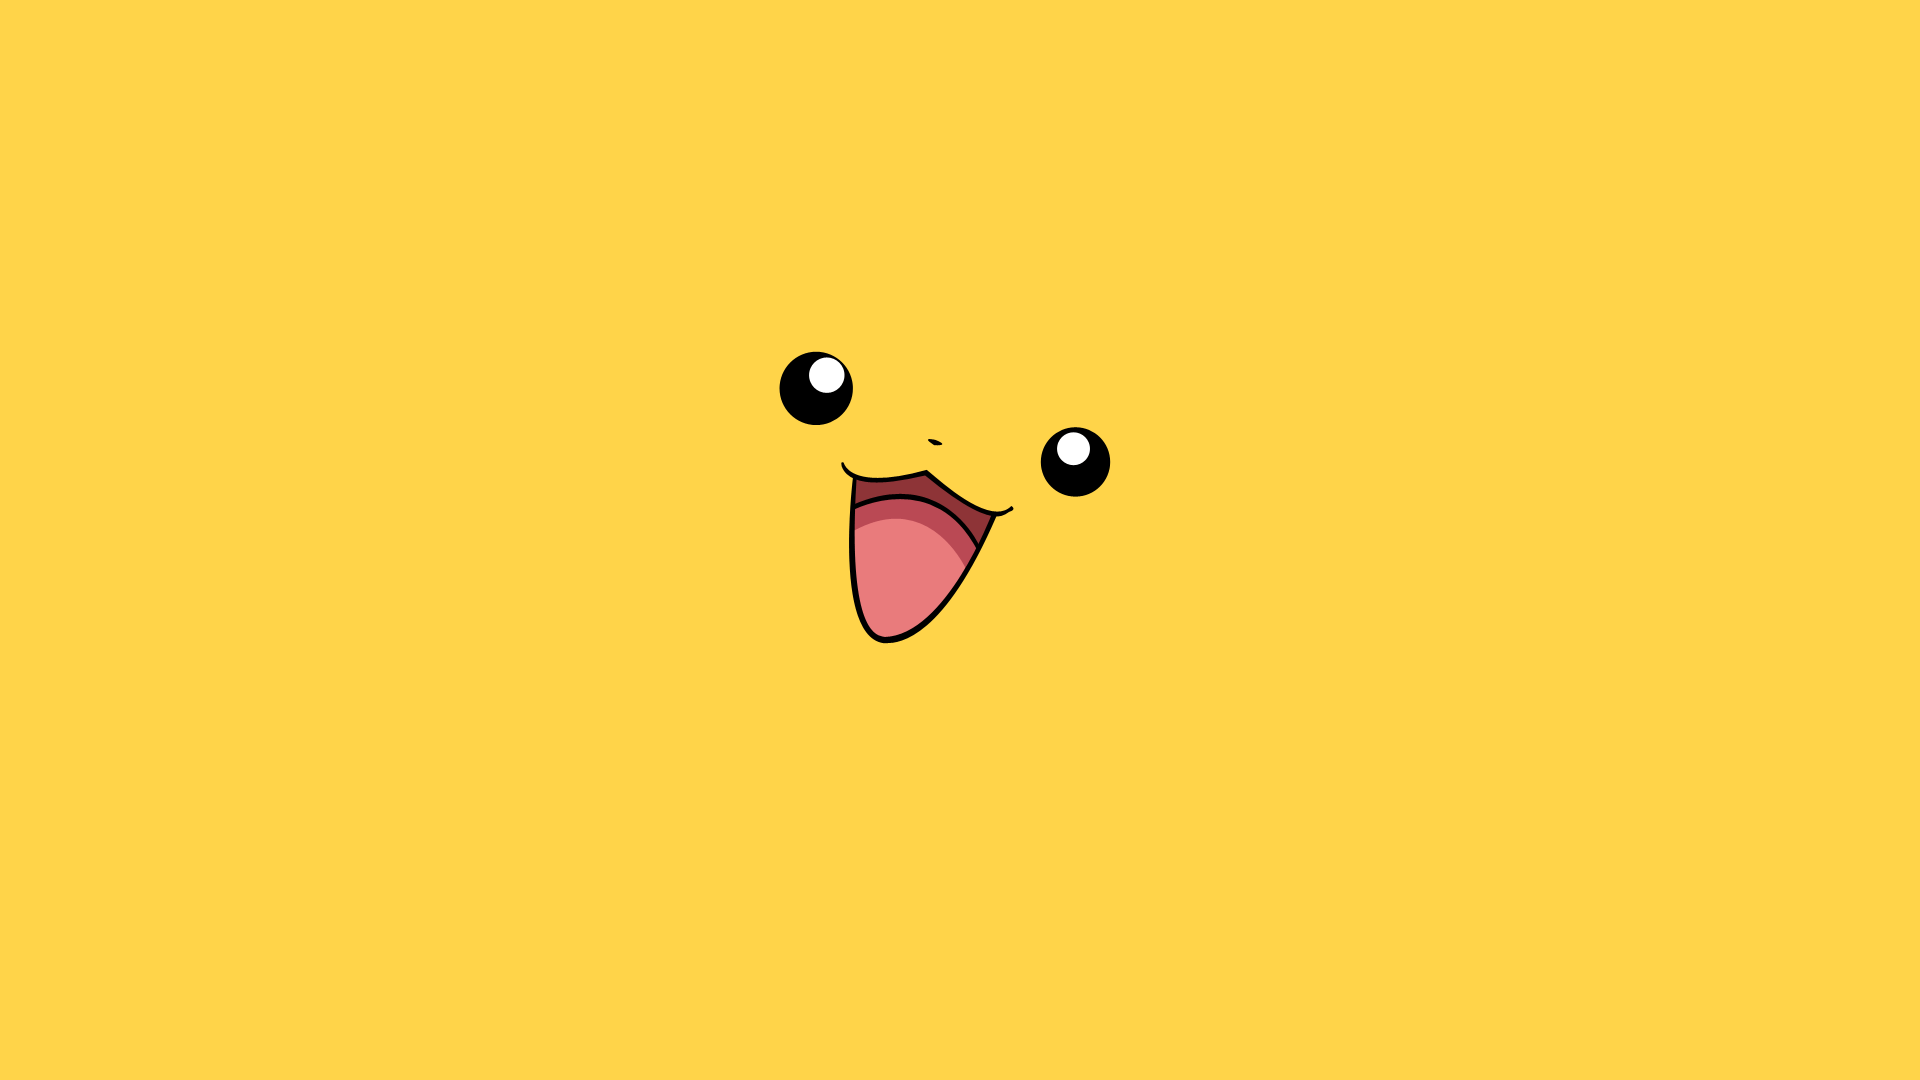 Pikachu Backgrounds - Wallpaper Cave